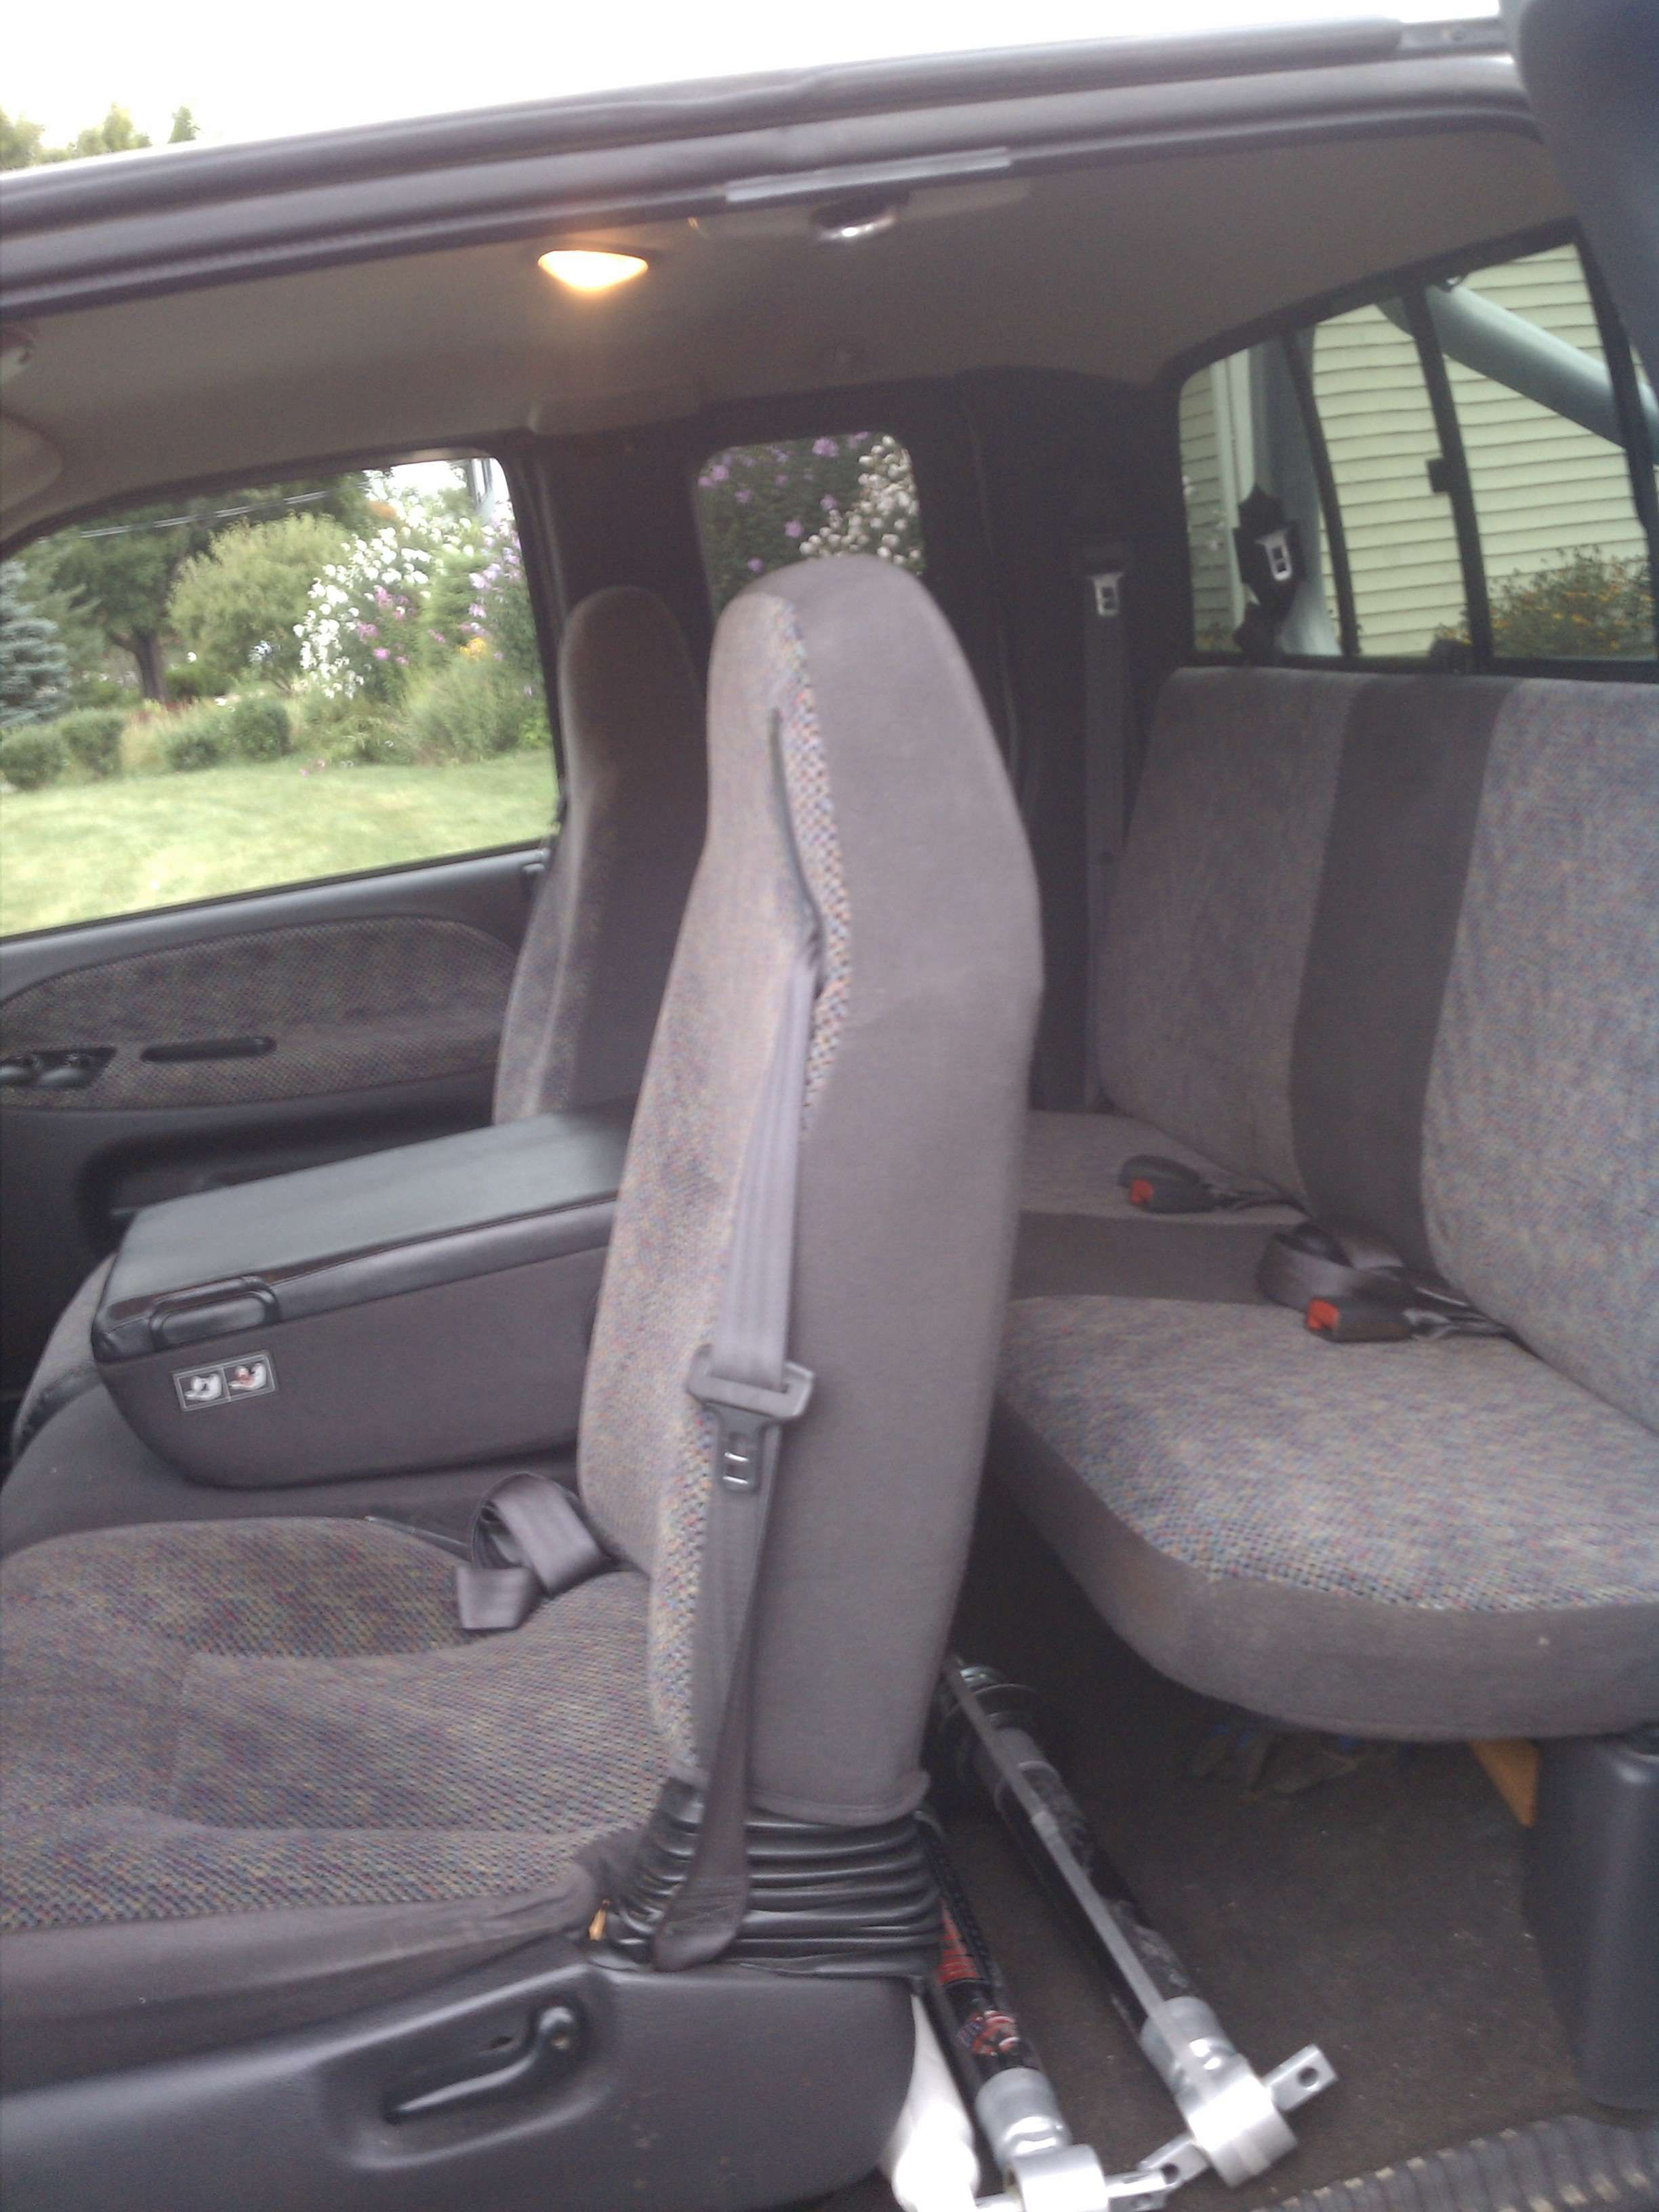 Make Dodge Model Ram 1500 Truck Year 2001 Body Style Extended Cab Pickup Exterior Color Silver Interior Color Gr Dodge Models Extended Cab Grey Doors